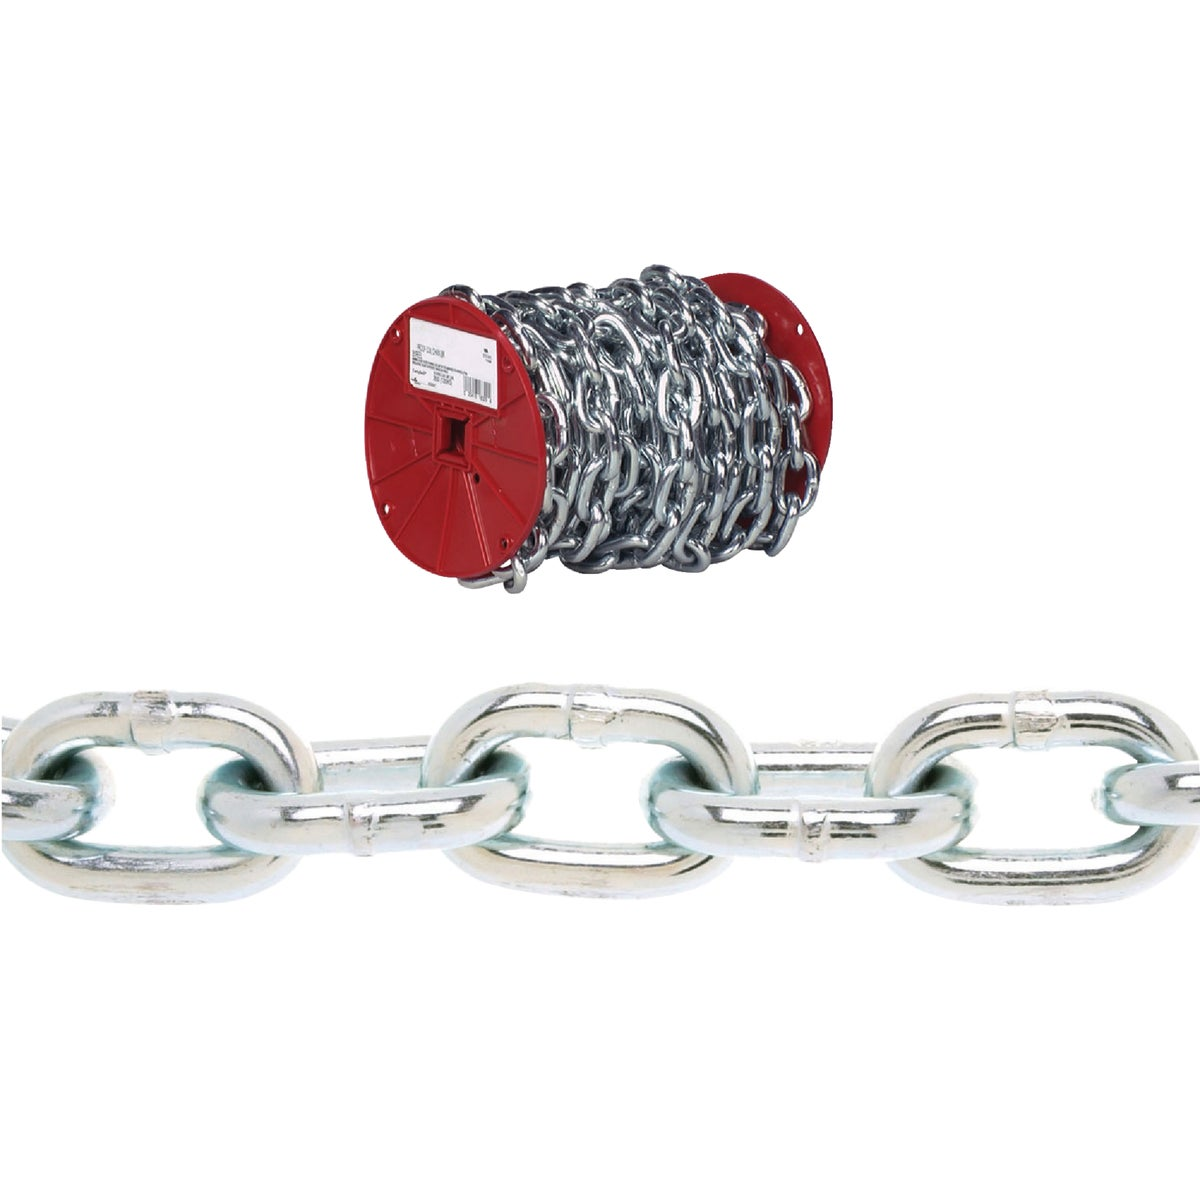 "100' 3/16"" G30 CHAIN - 0725027 by Cooper Campbell Apex"